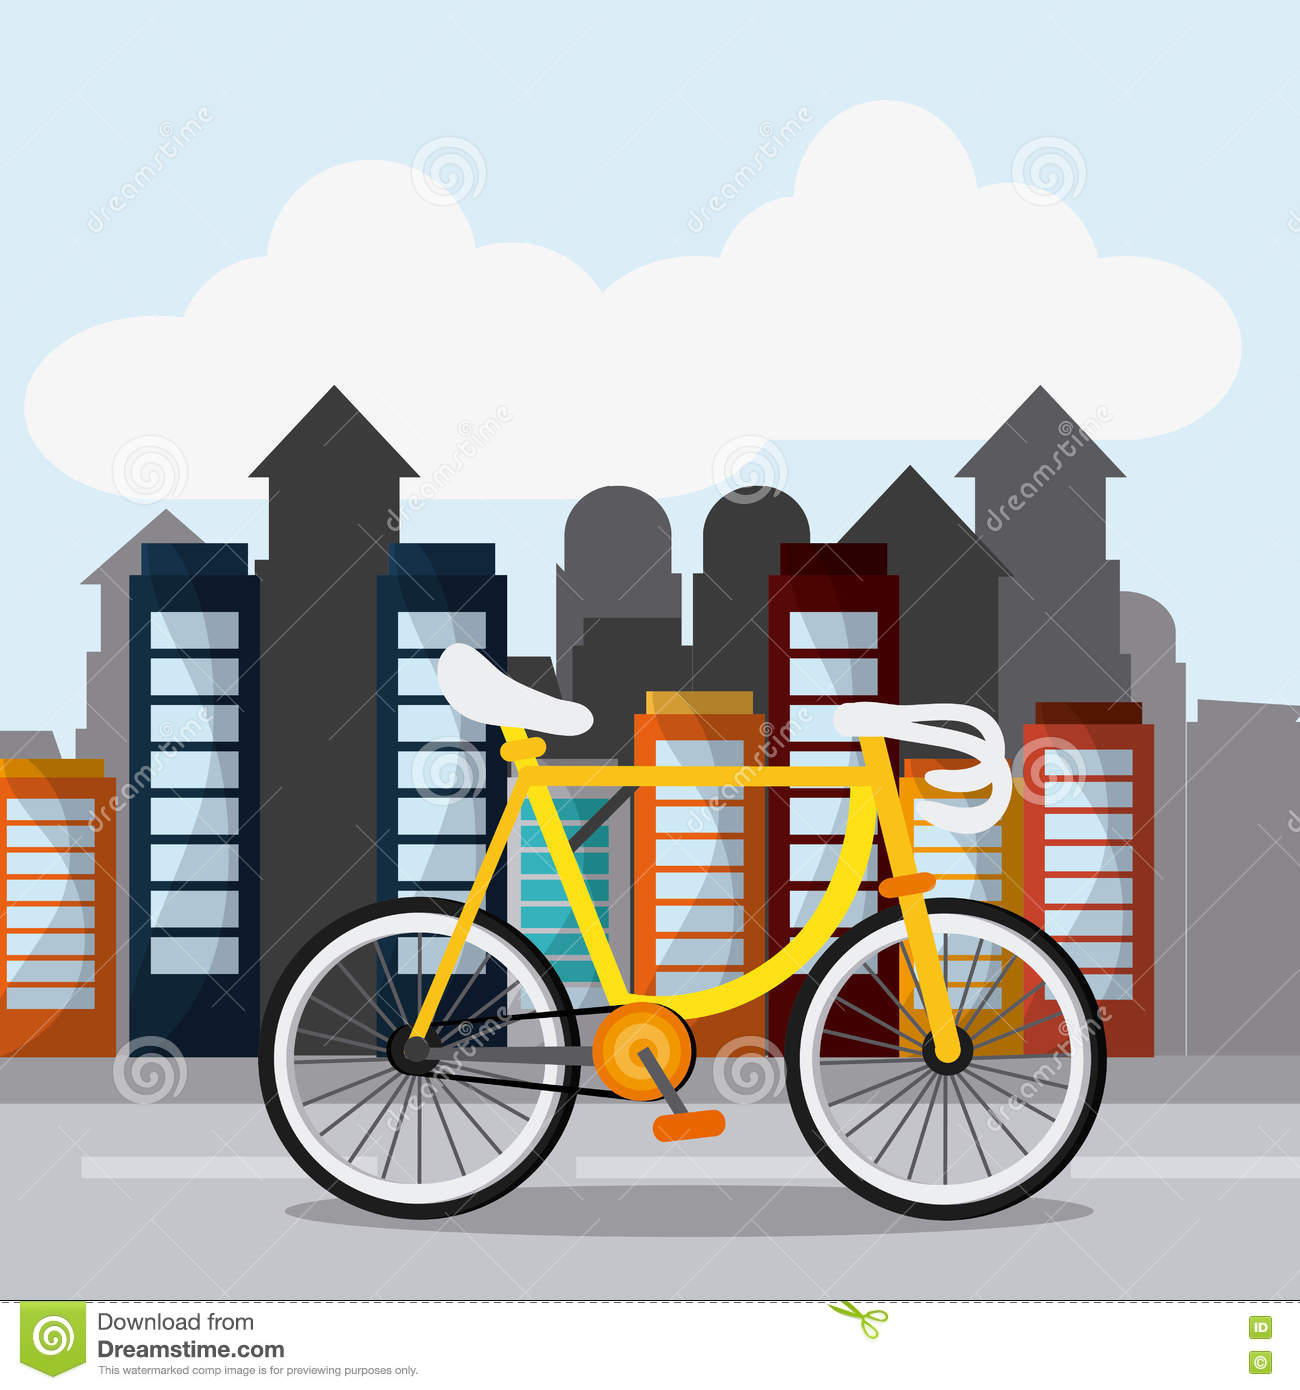 classic bicycle bike and city icon sport concept graph stock rh dreamstime com Funny Bicycle Clip Art Bicycle Rider Clip Art